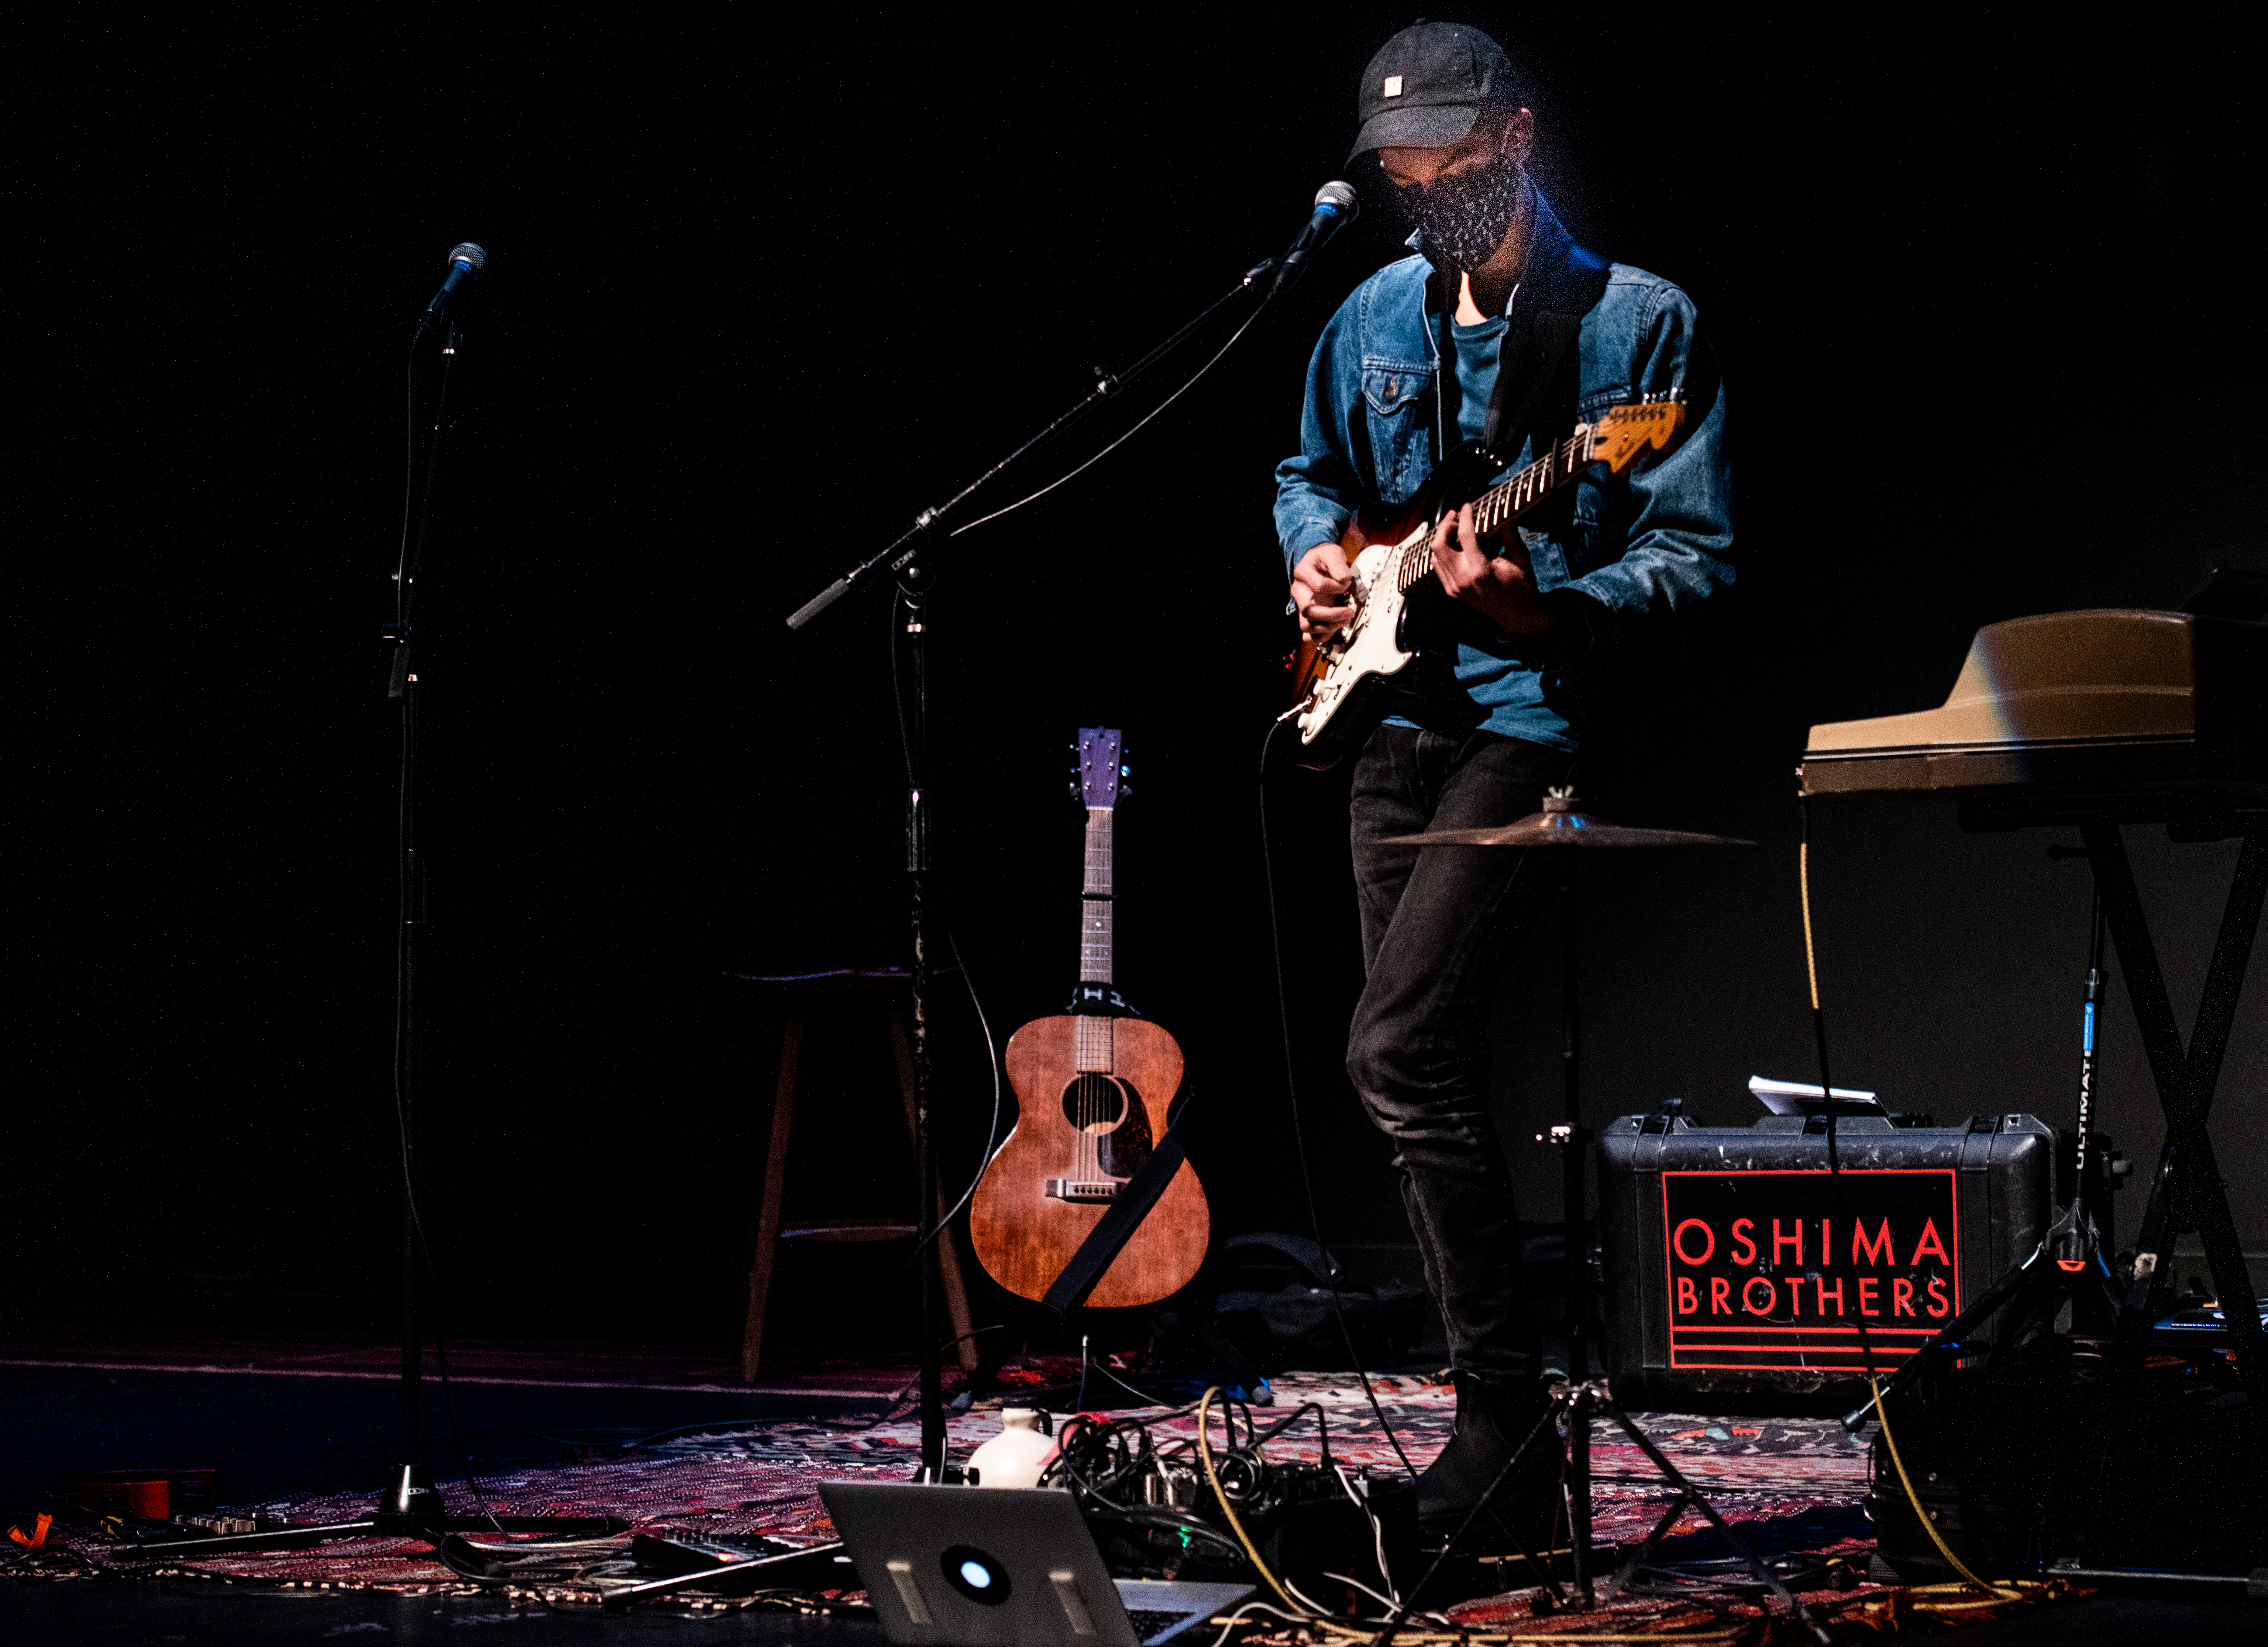 Jamie Oshima plays guitar during a sound check at the Waldo Theatre in Waldoboro on Thursday, Dec. 3. Jamie produces and audio engineers all the band's music. (Bisi Cameron Yee photo)